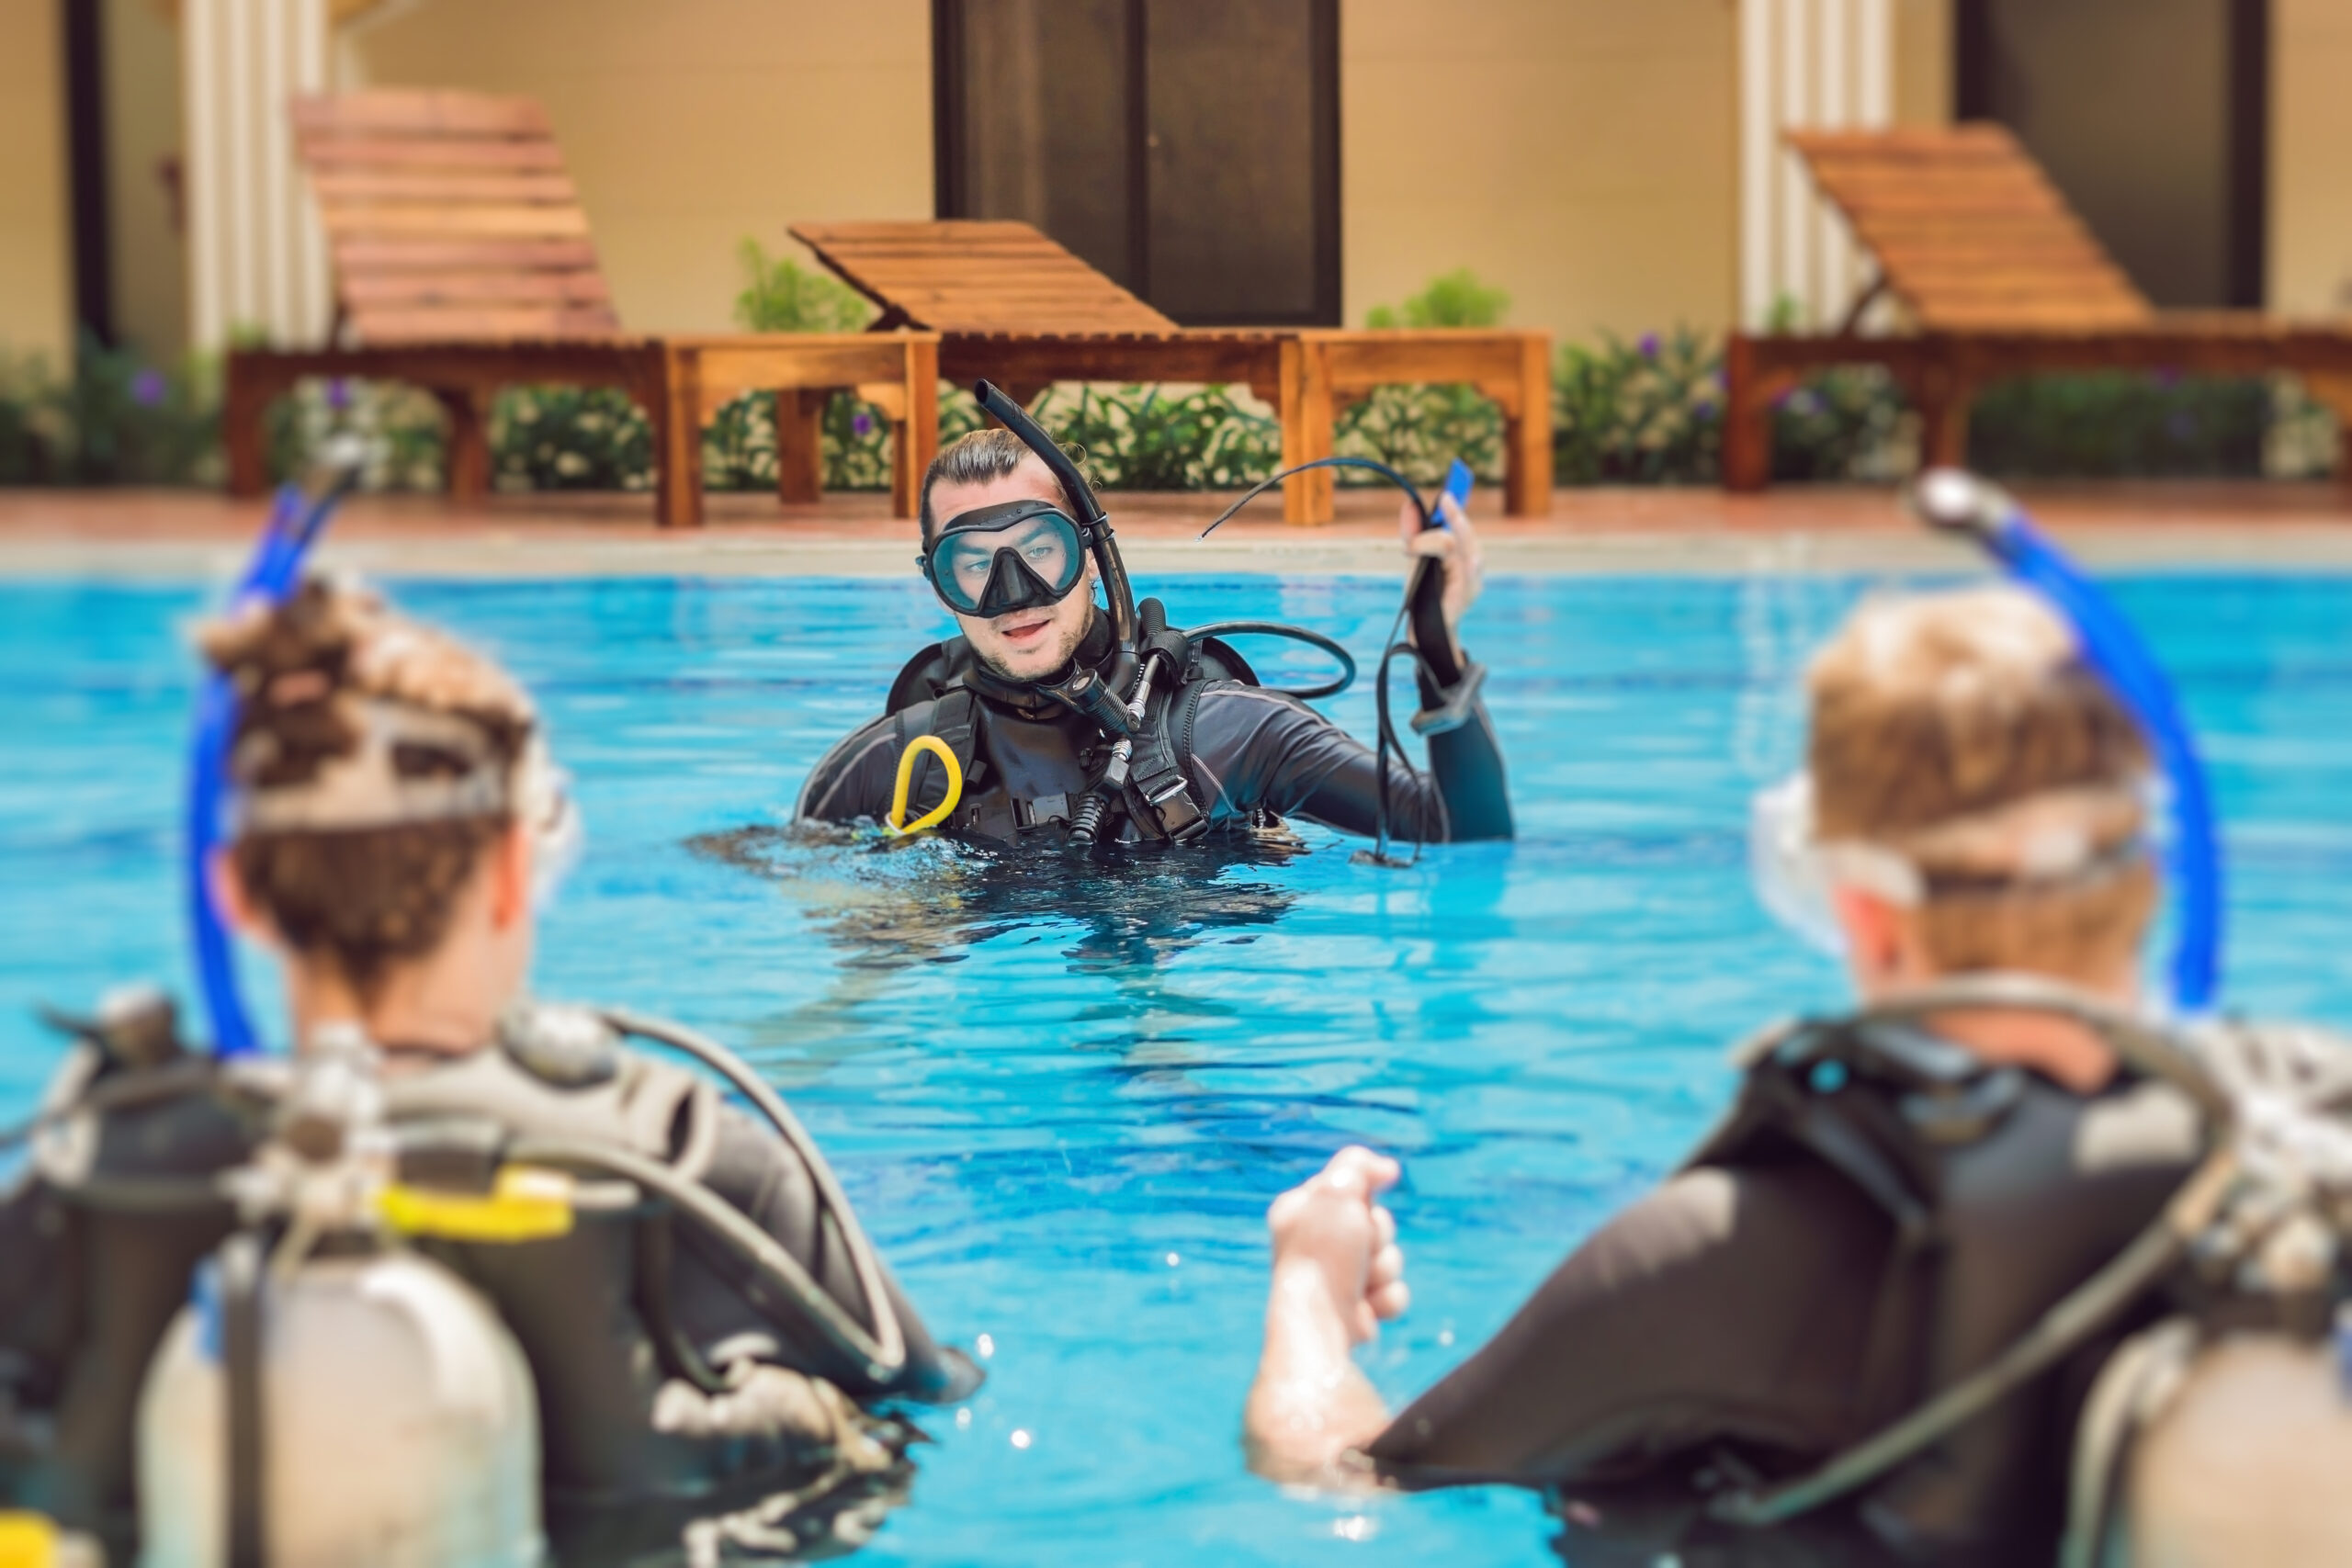 Diving instructor and students. Instructor teaches students to dive.